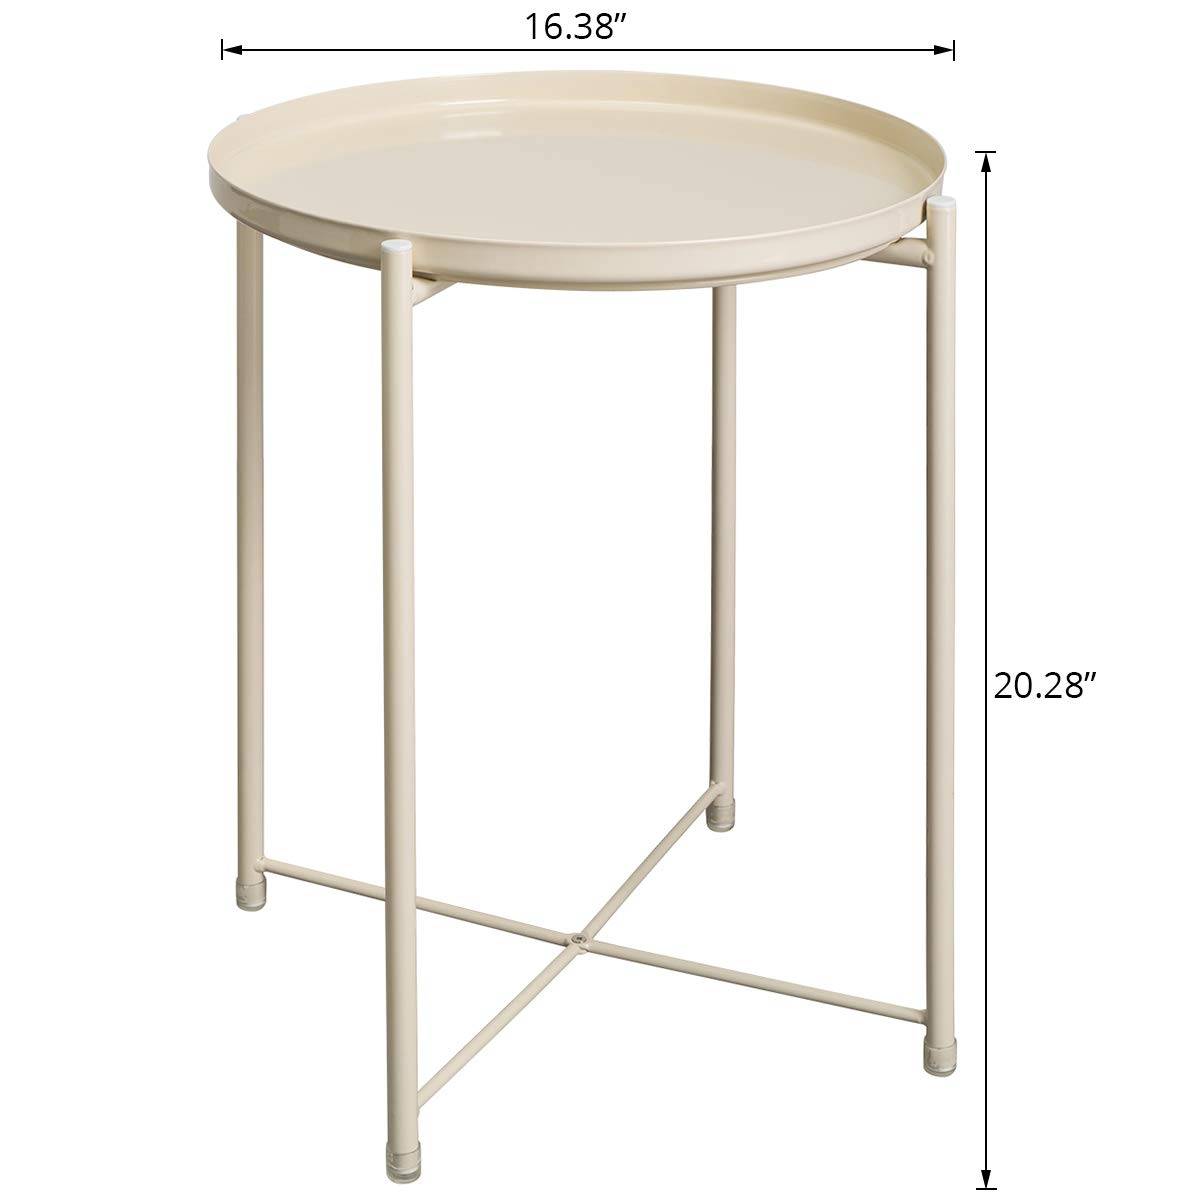 hollyhome folding tray metal end table sofa small bdl oval accent round side tables anti rust and waterproof outdoor indoor snack coffee pottery barn white bedside modern dining